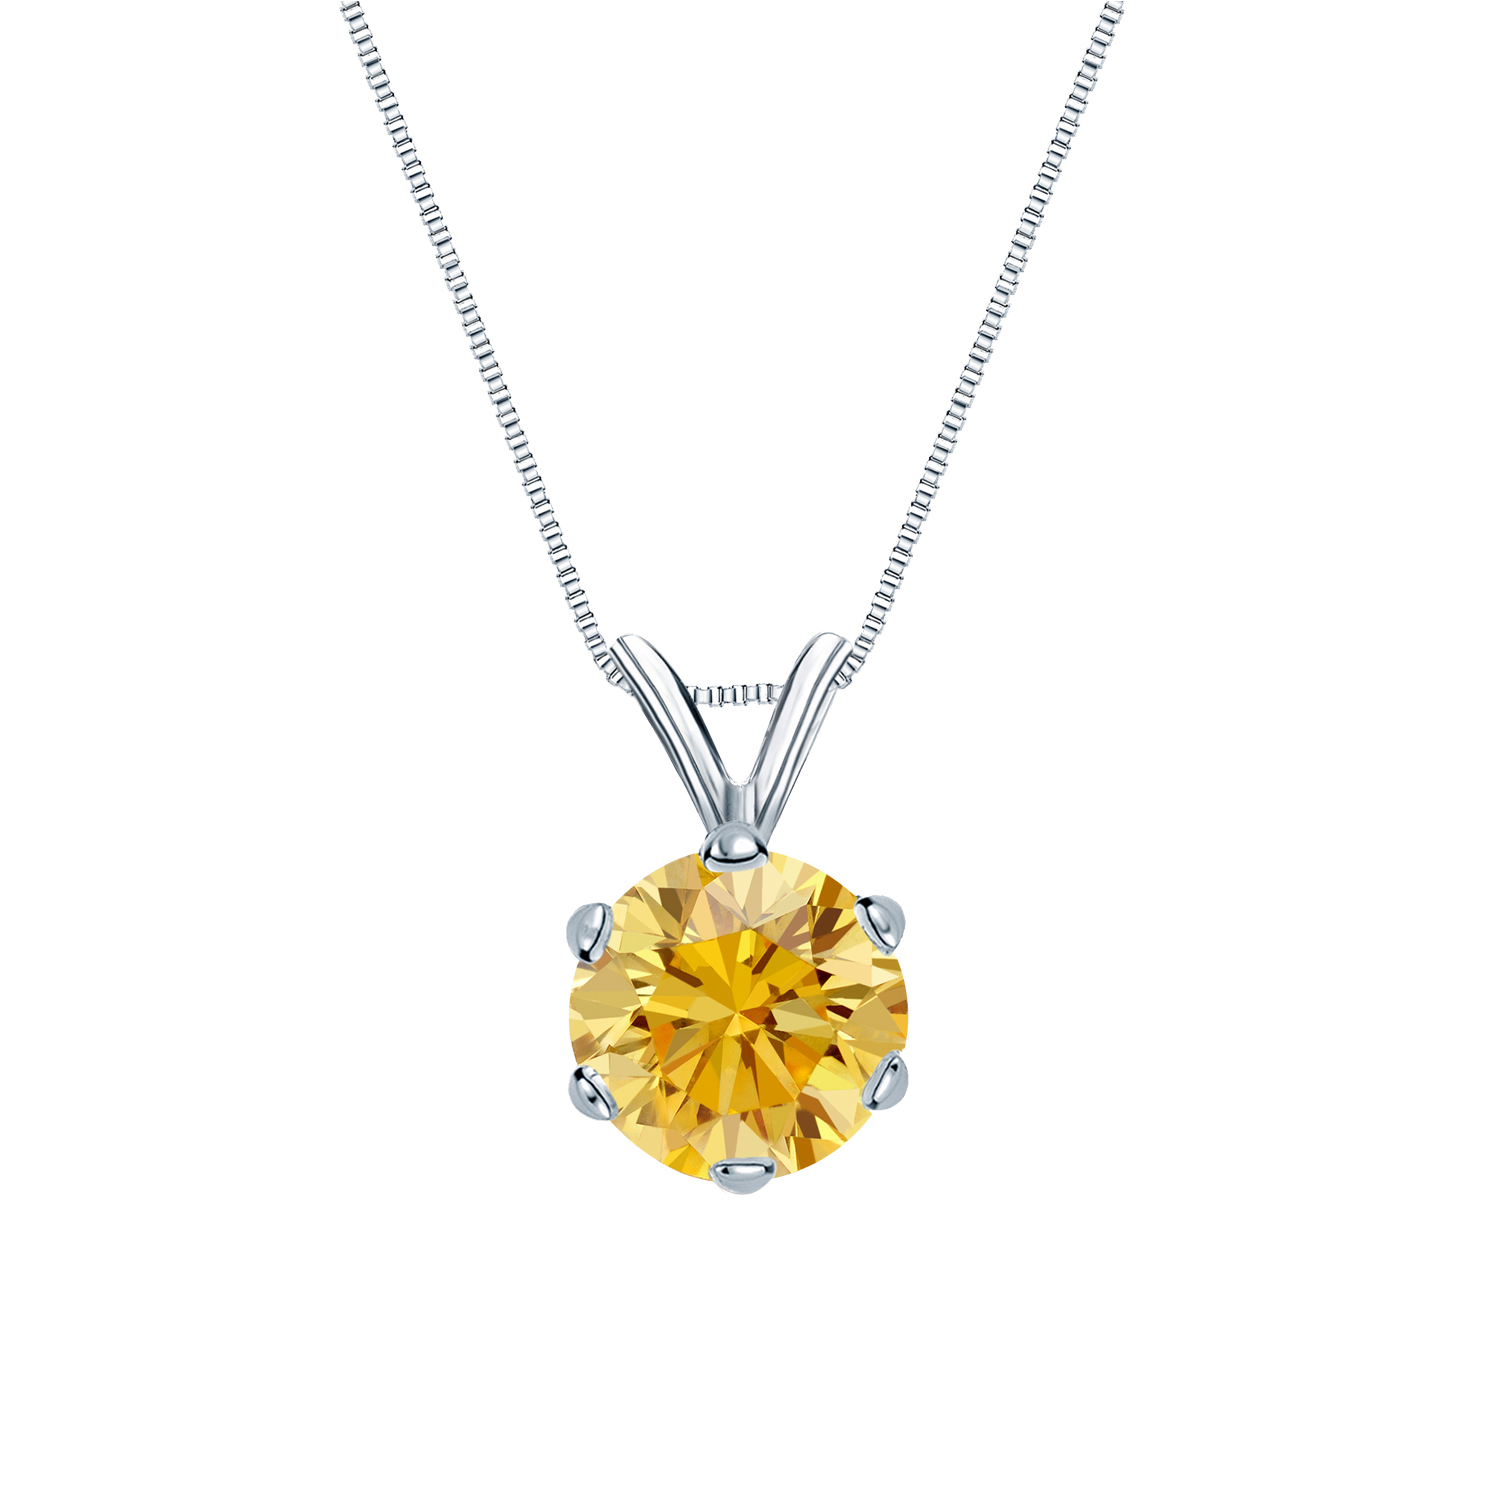 0.25 Carat jaune Solitaire Diamants Pendentif Or blanc 14K